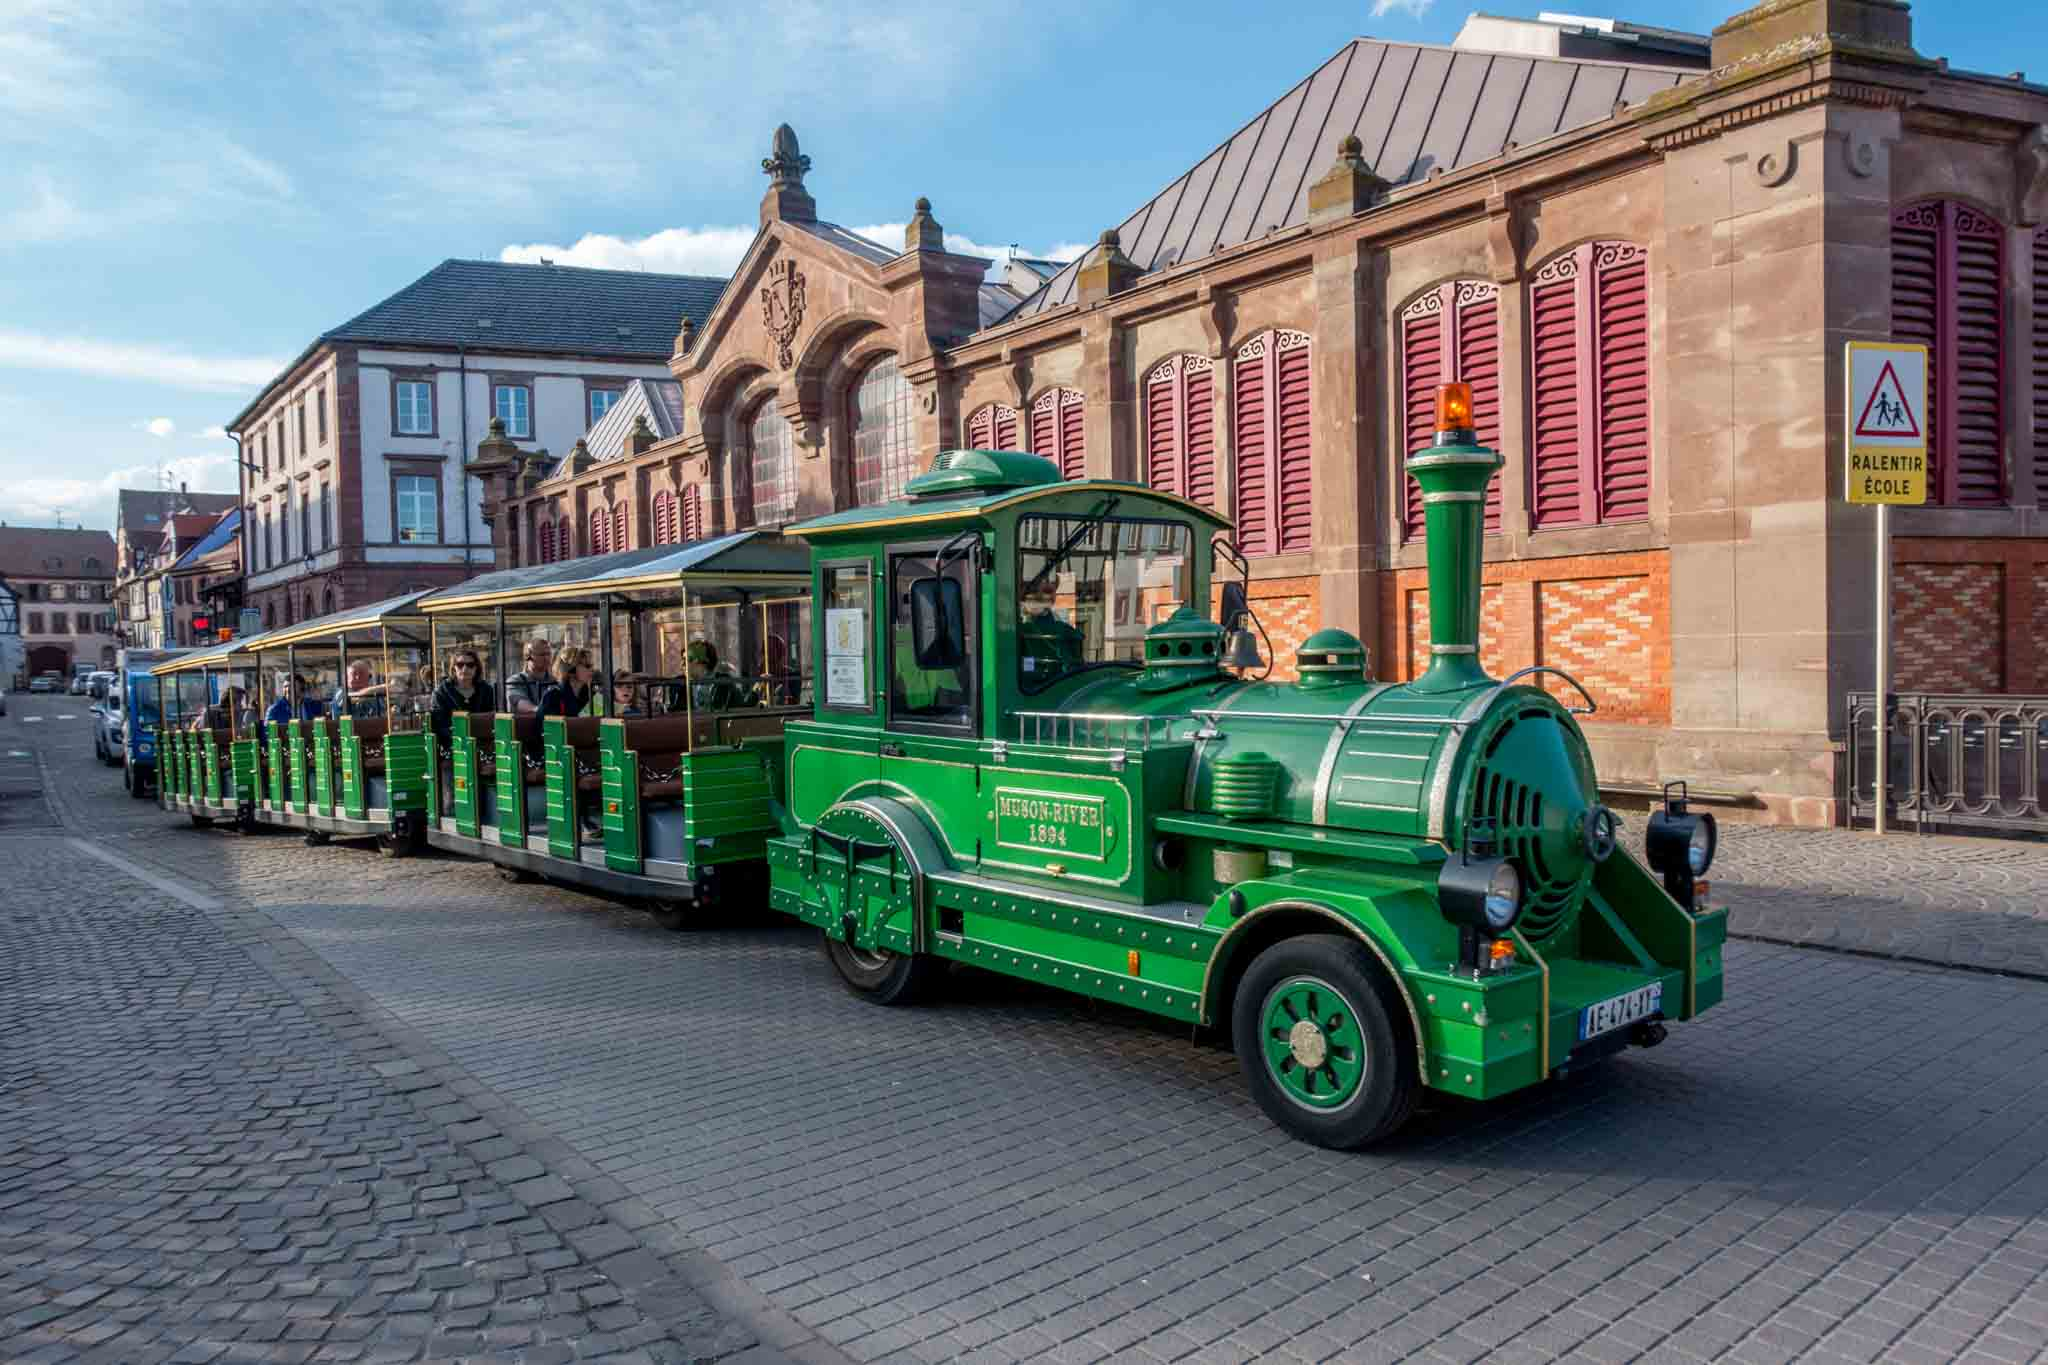 The small green or white trains will take you to visit the Colmar tourist attractions